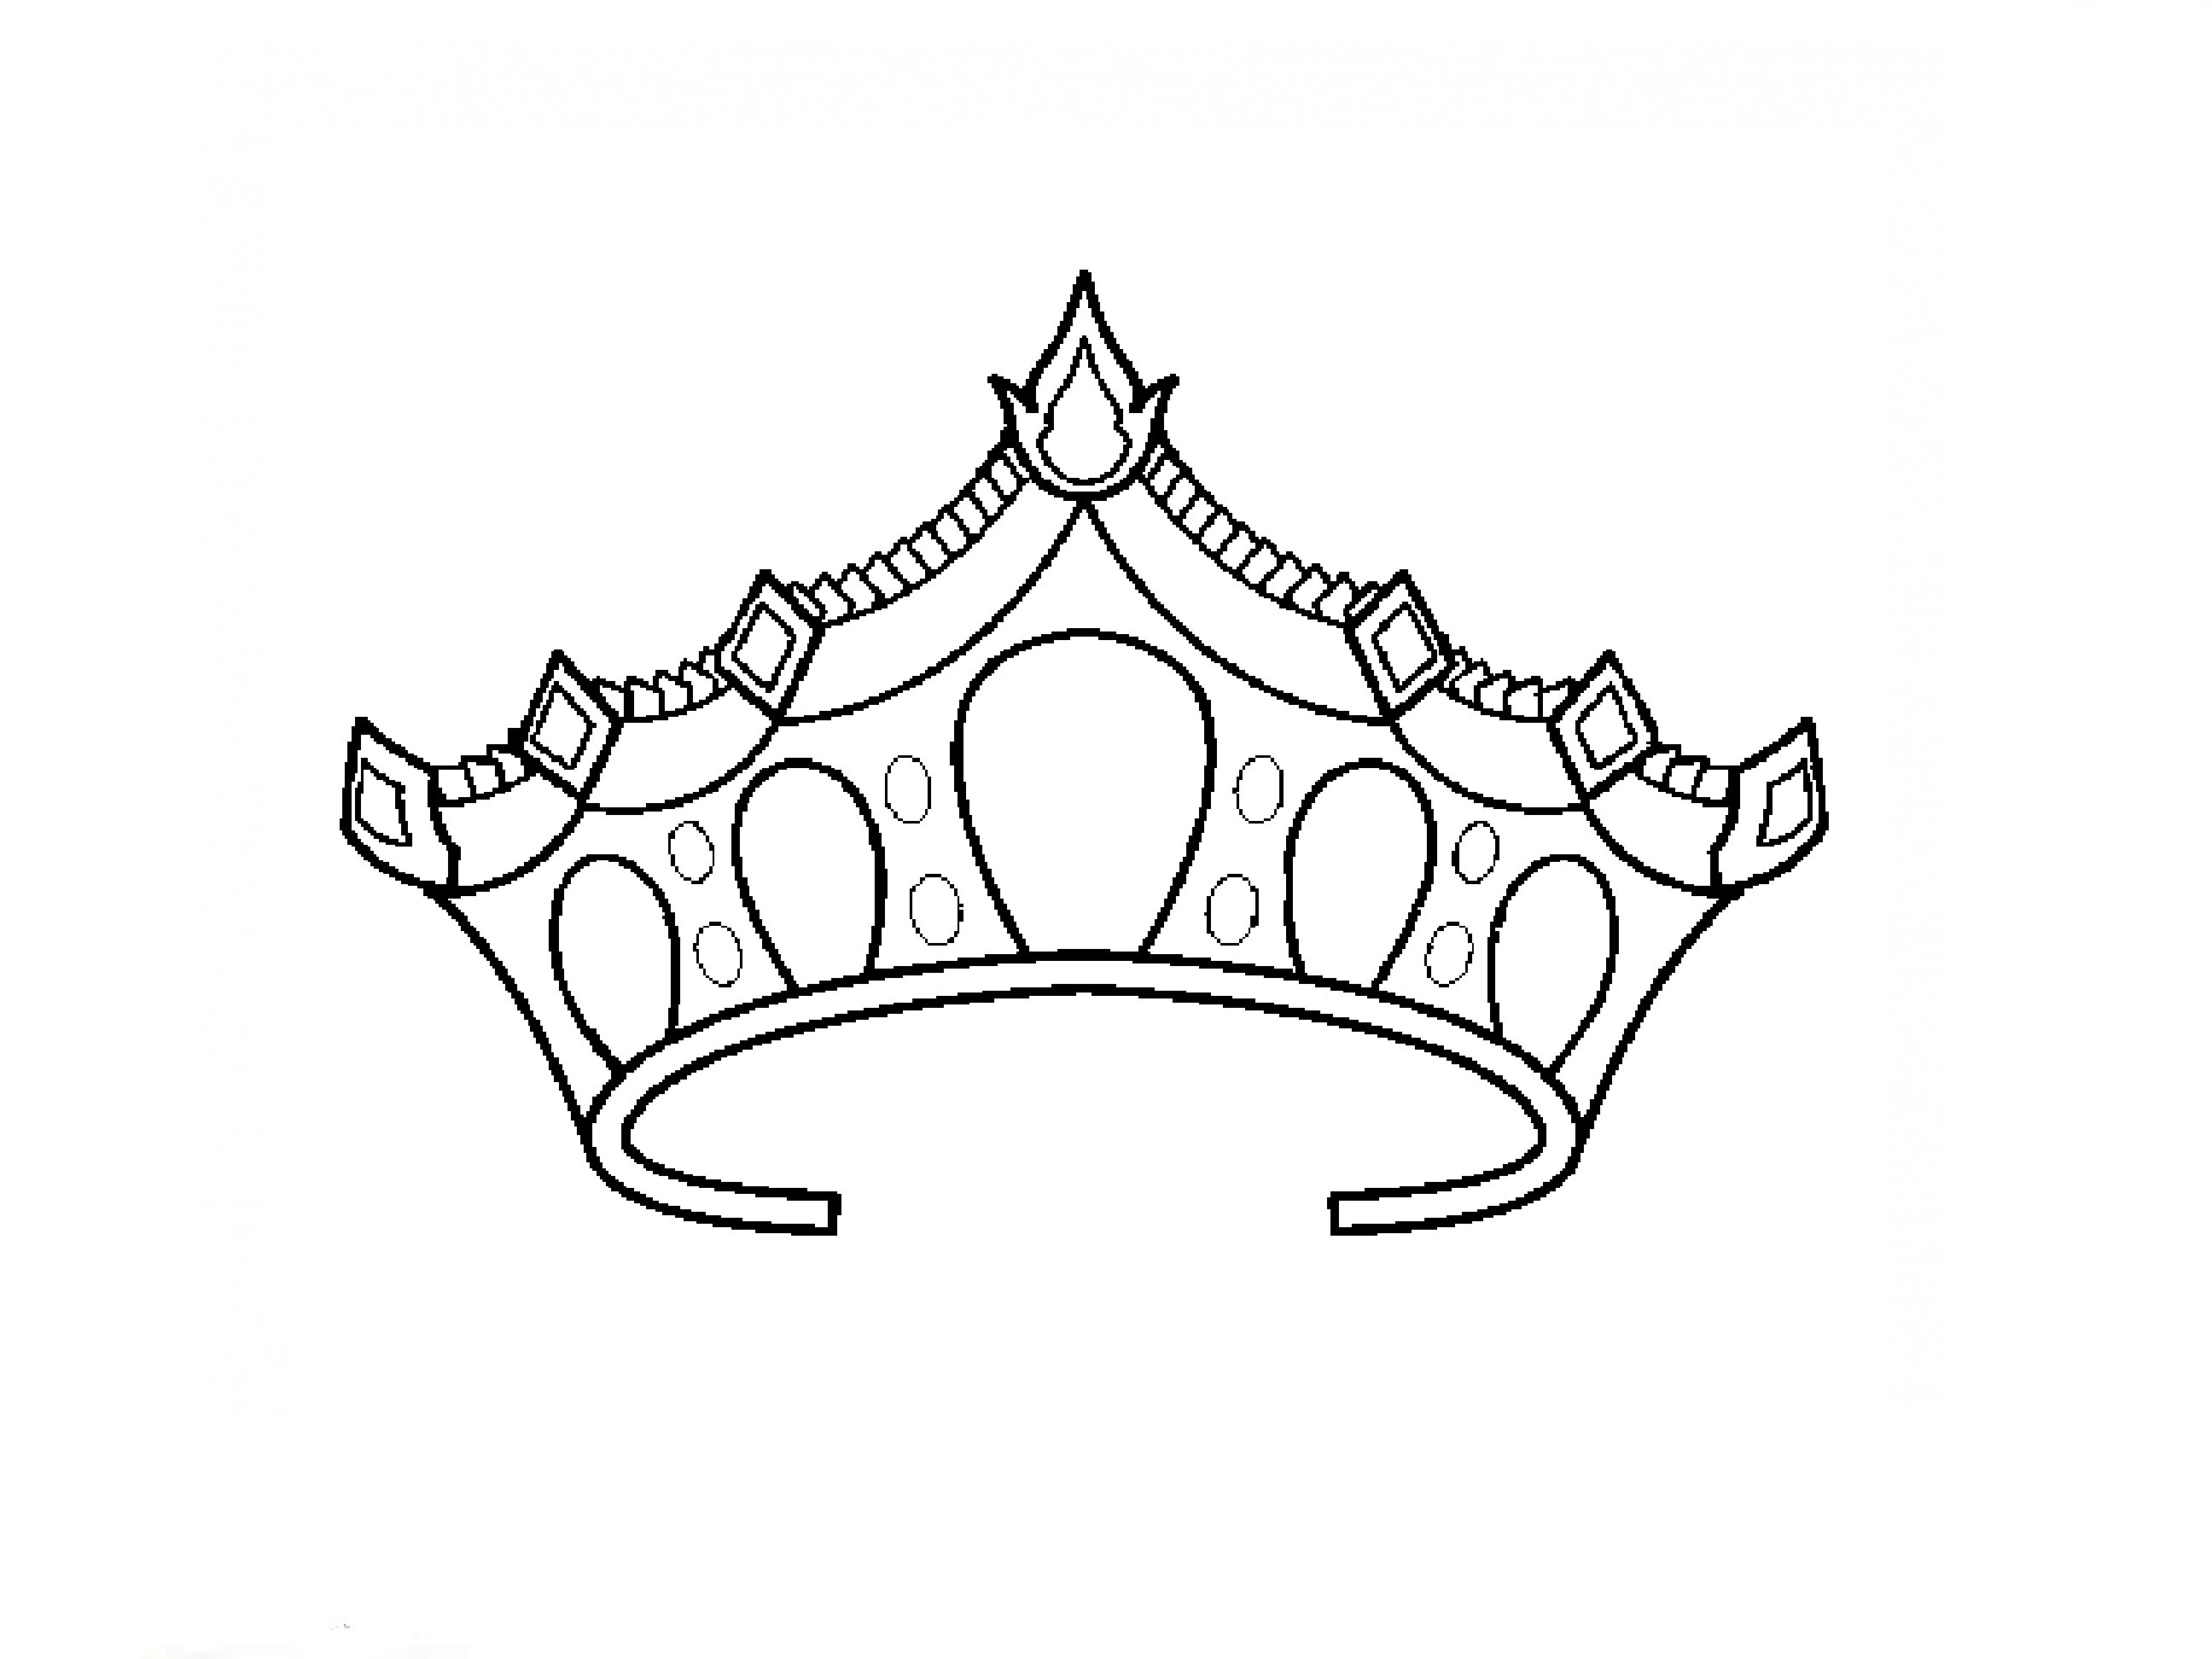 how to draw a crown kings crown drawing at getdrawings free download a how to draw crown